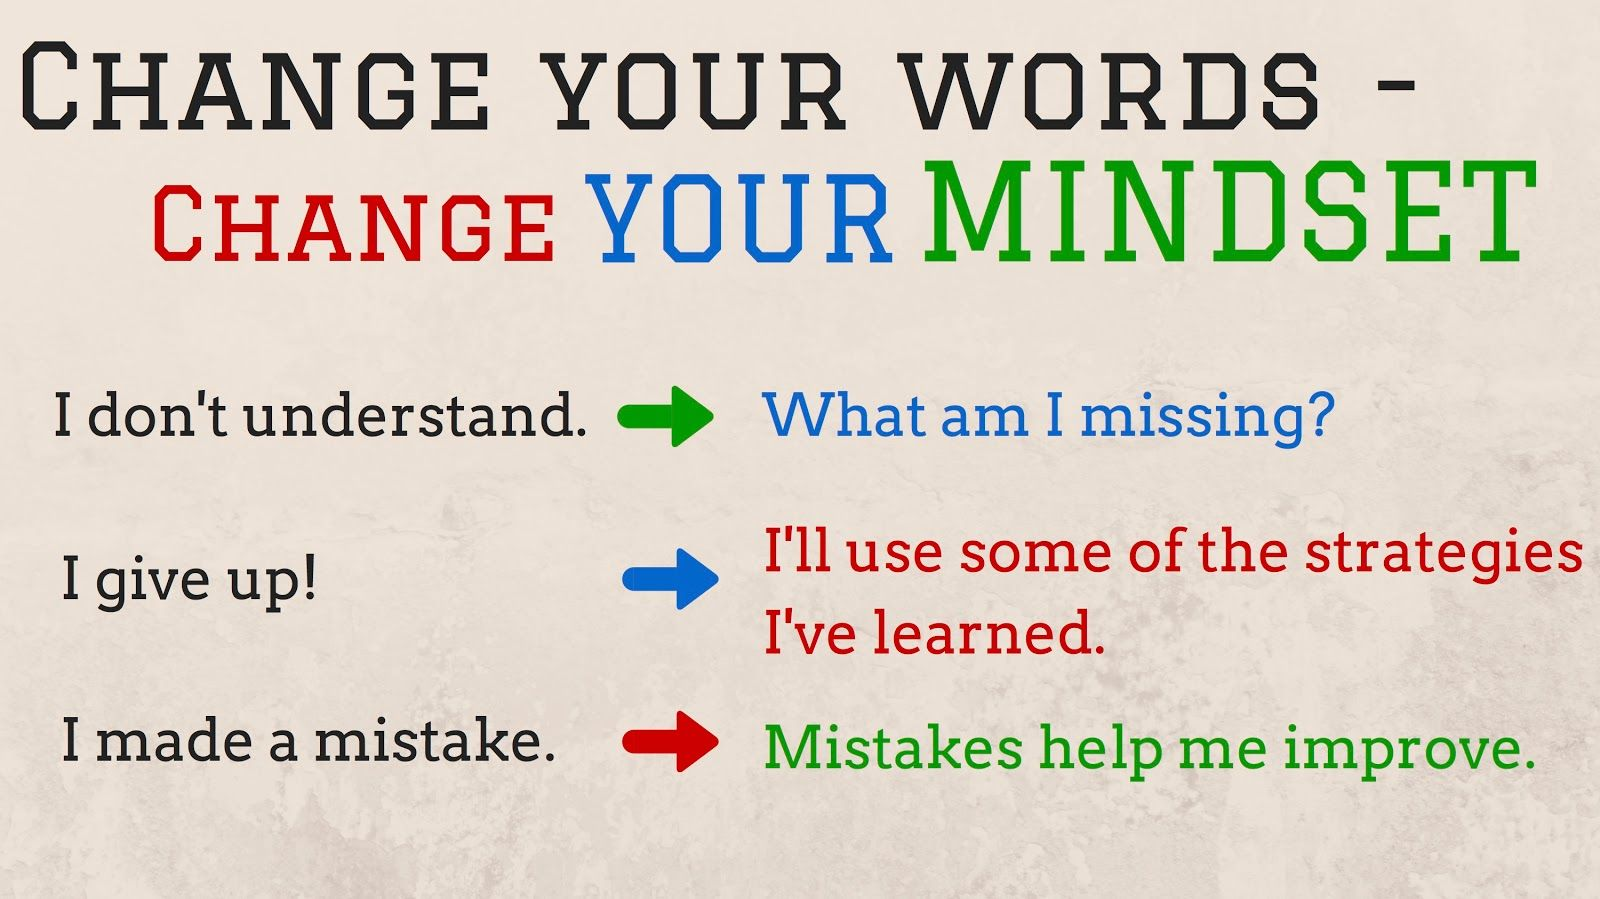 Change Your Words Change Your Mindset 899